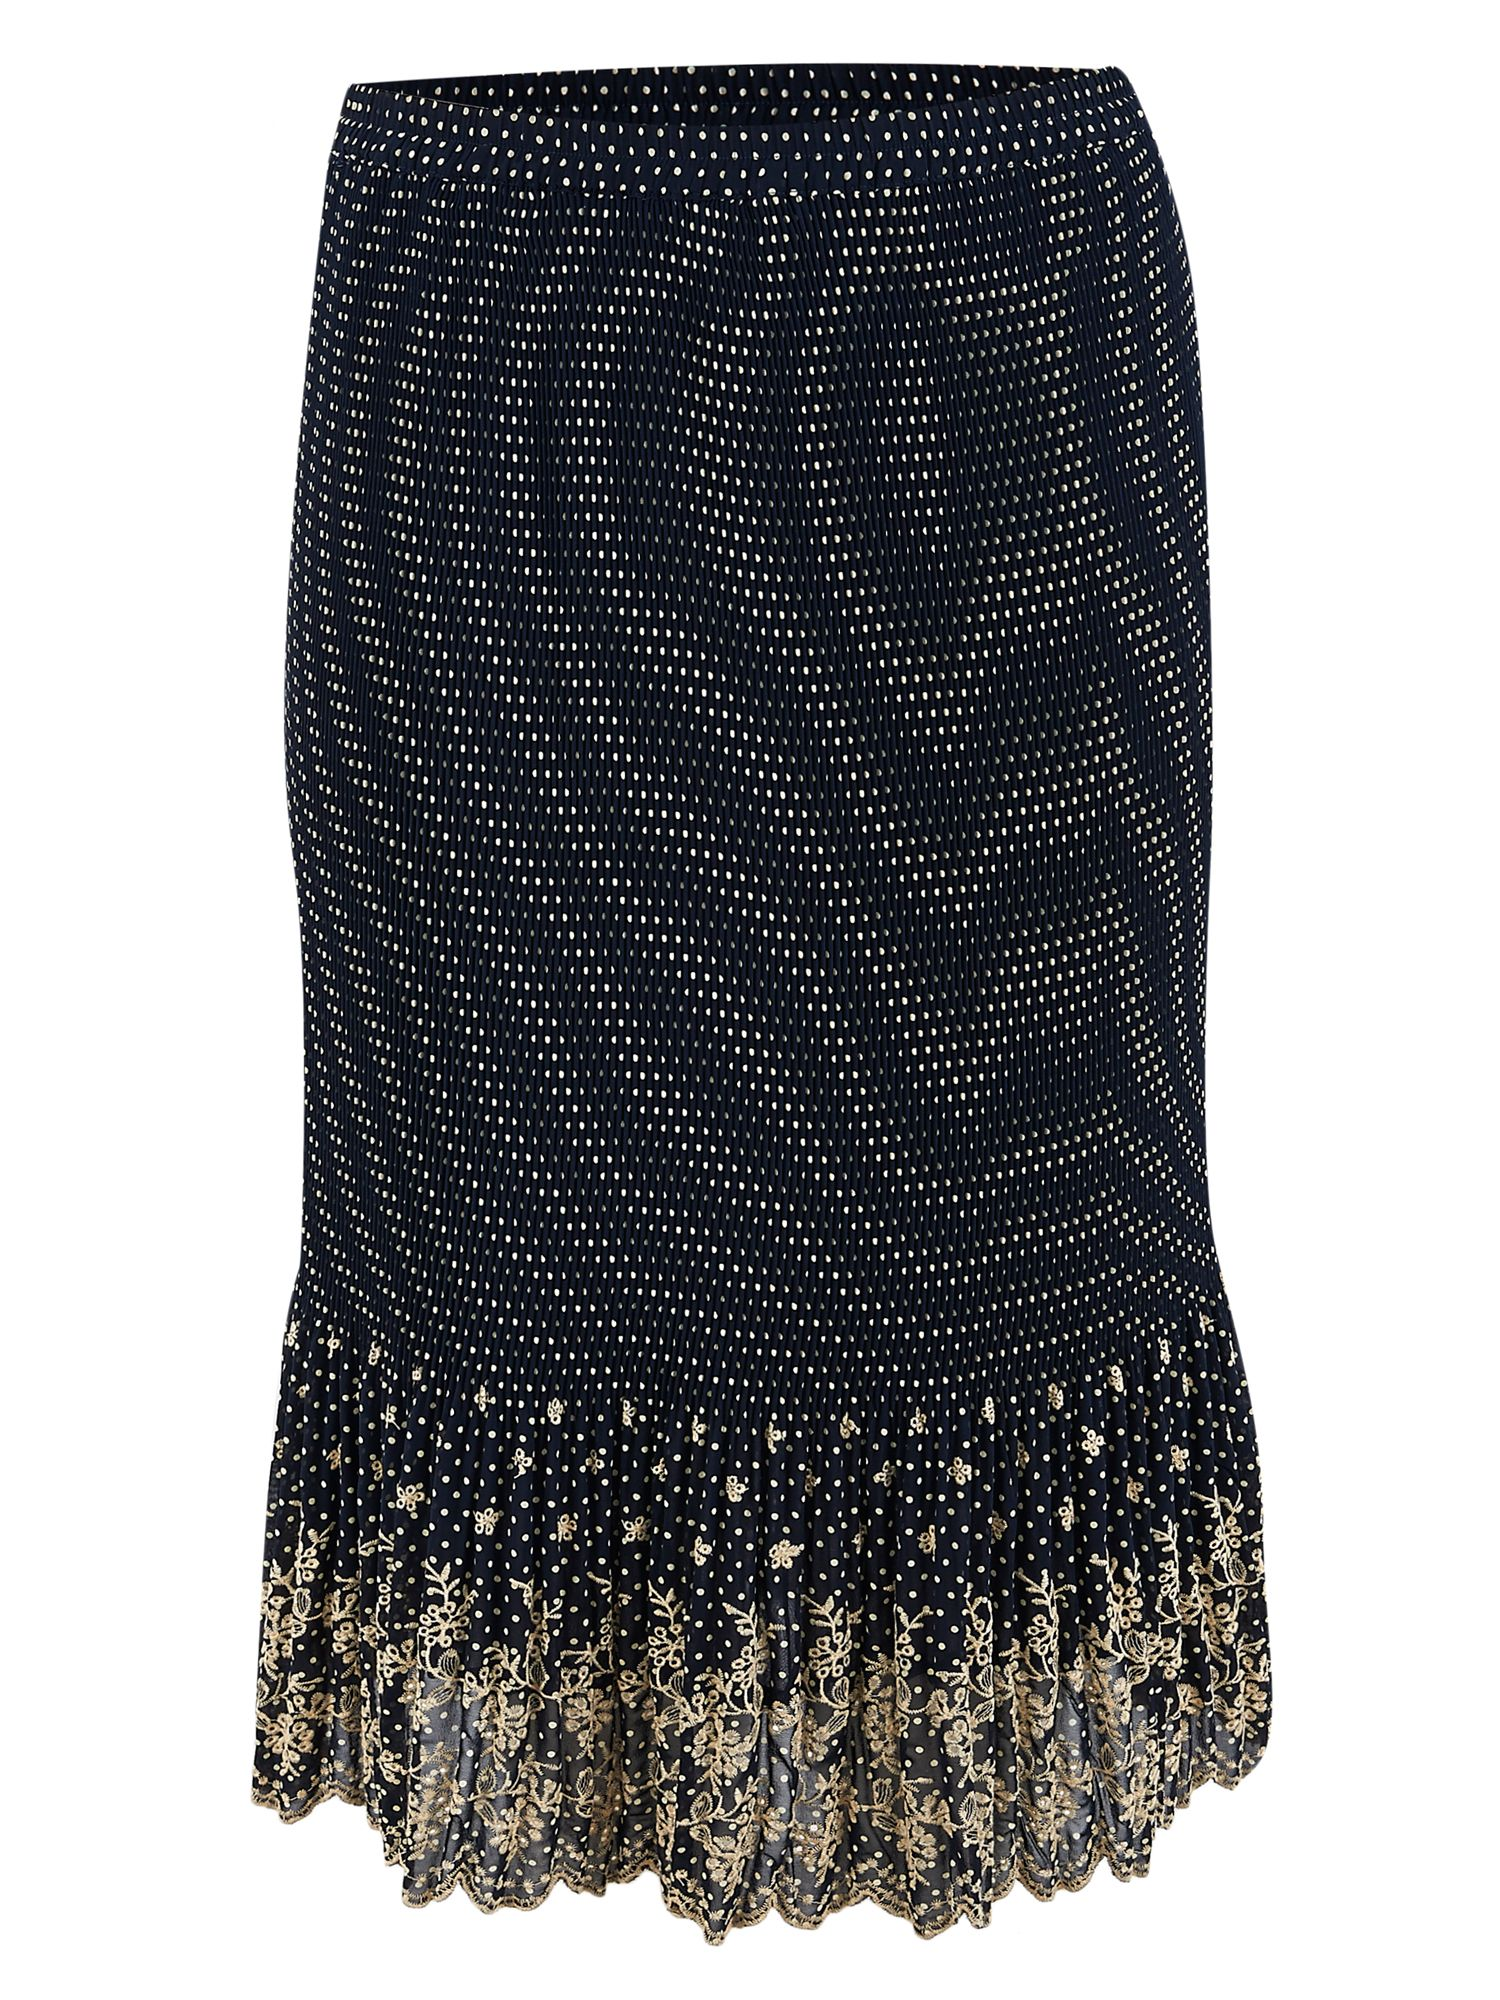 Spot Print Embroidered Crush Pleat Skirt